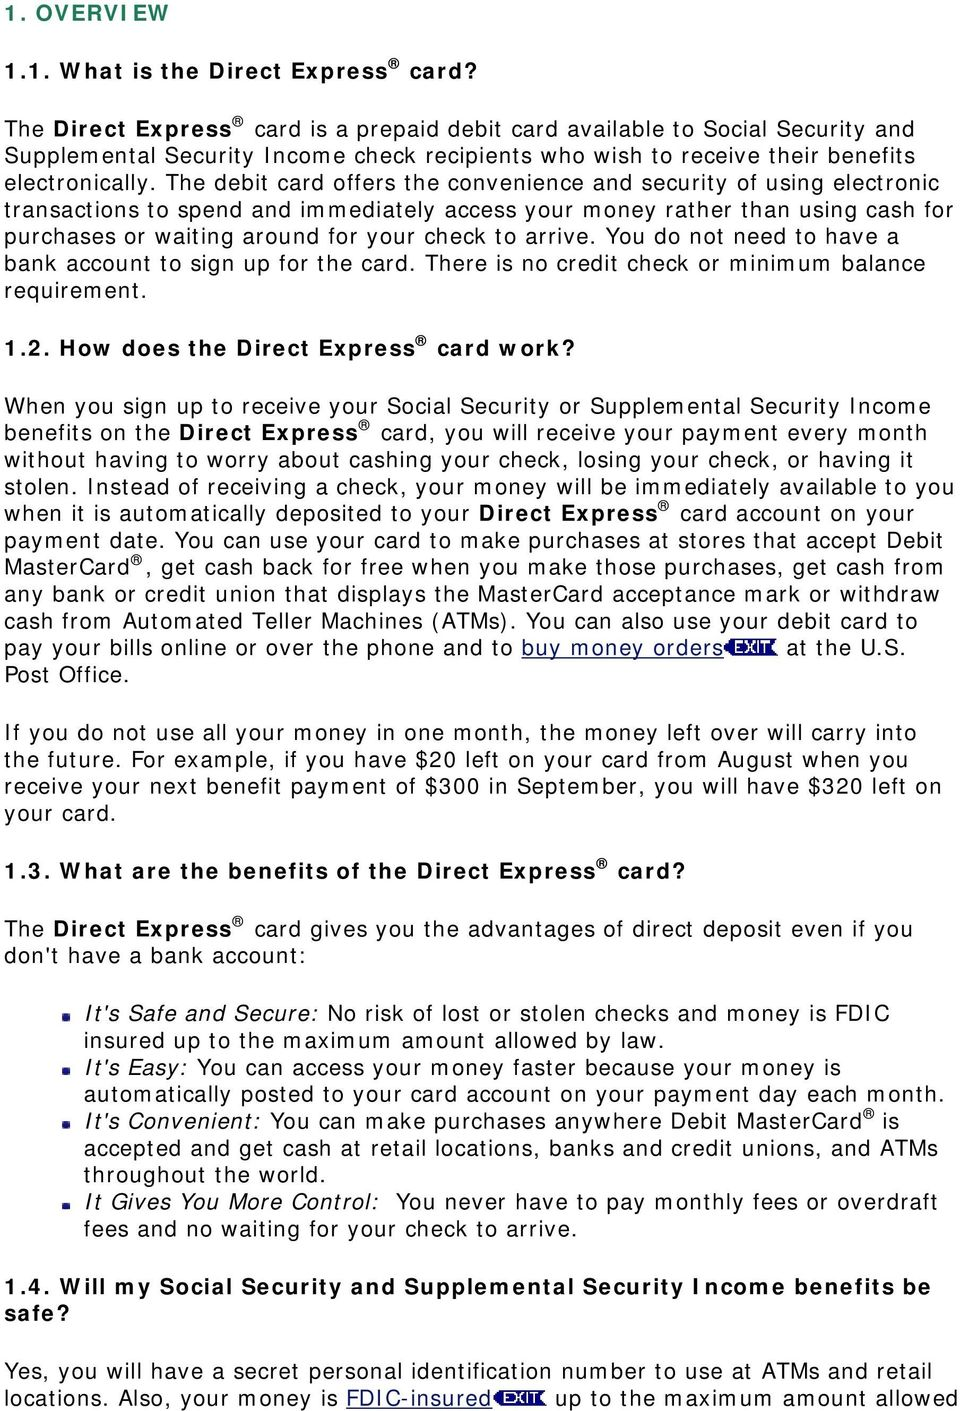 1 4  Will my Social Security and Supplemental Security Income